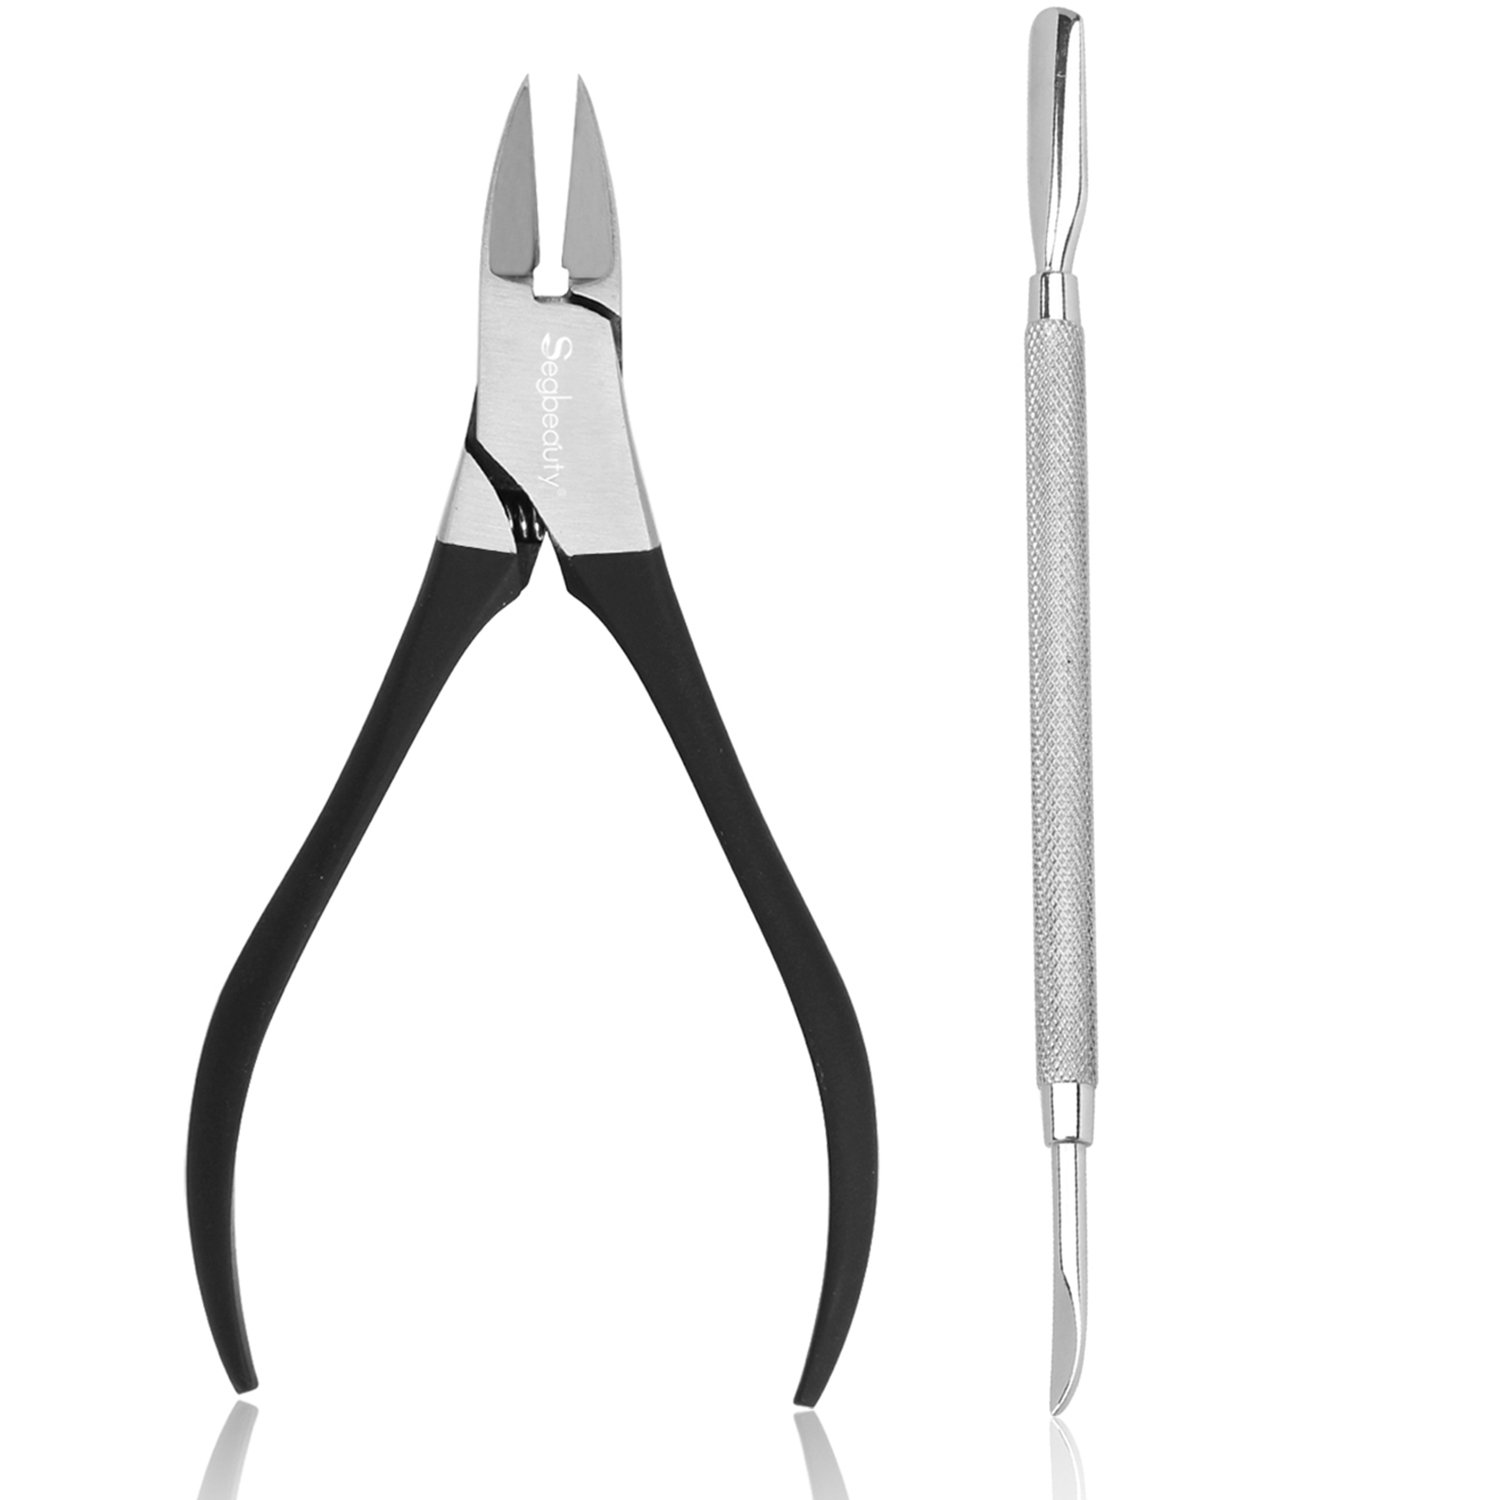 Segbeauty Manicure Pedicure Nail Clipper Set, Nail Salons Nail Art Kit by, Stainless Steel Nail Nipper Cuticle Pusher, 1/2'' Jaw Ingrown Toenail Remover, Professional Nail Care Cuticle Trimmer